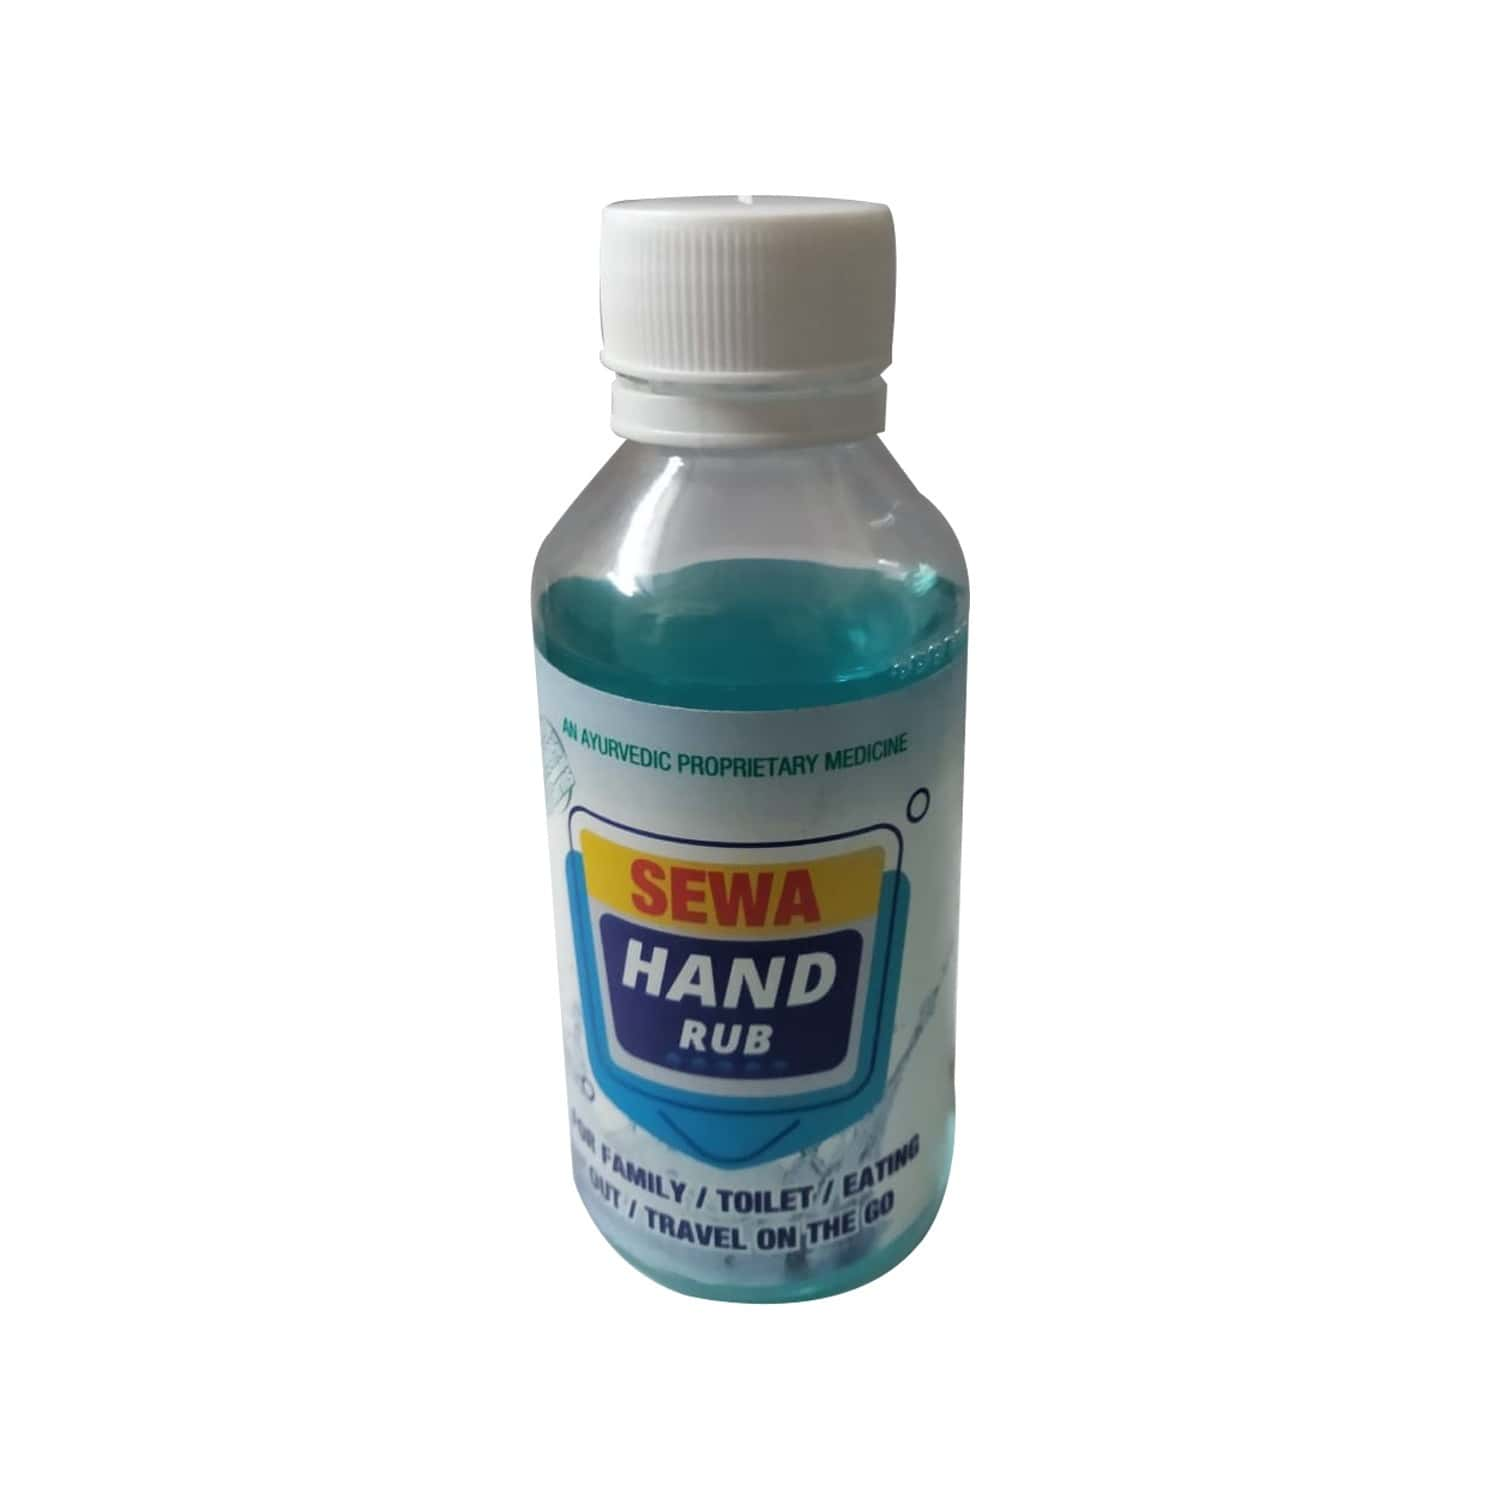 Sewa Hand Rub Hand Sanitizer Bottle Of 100 Ml